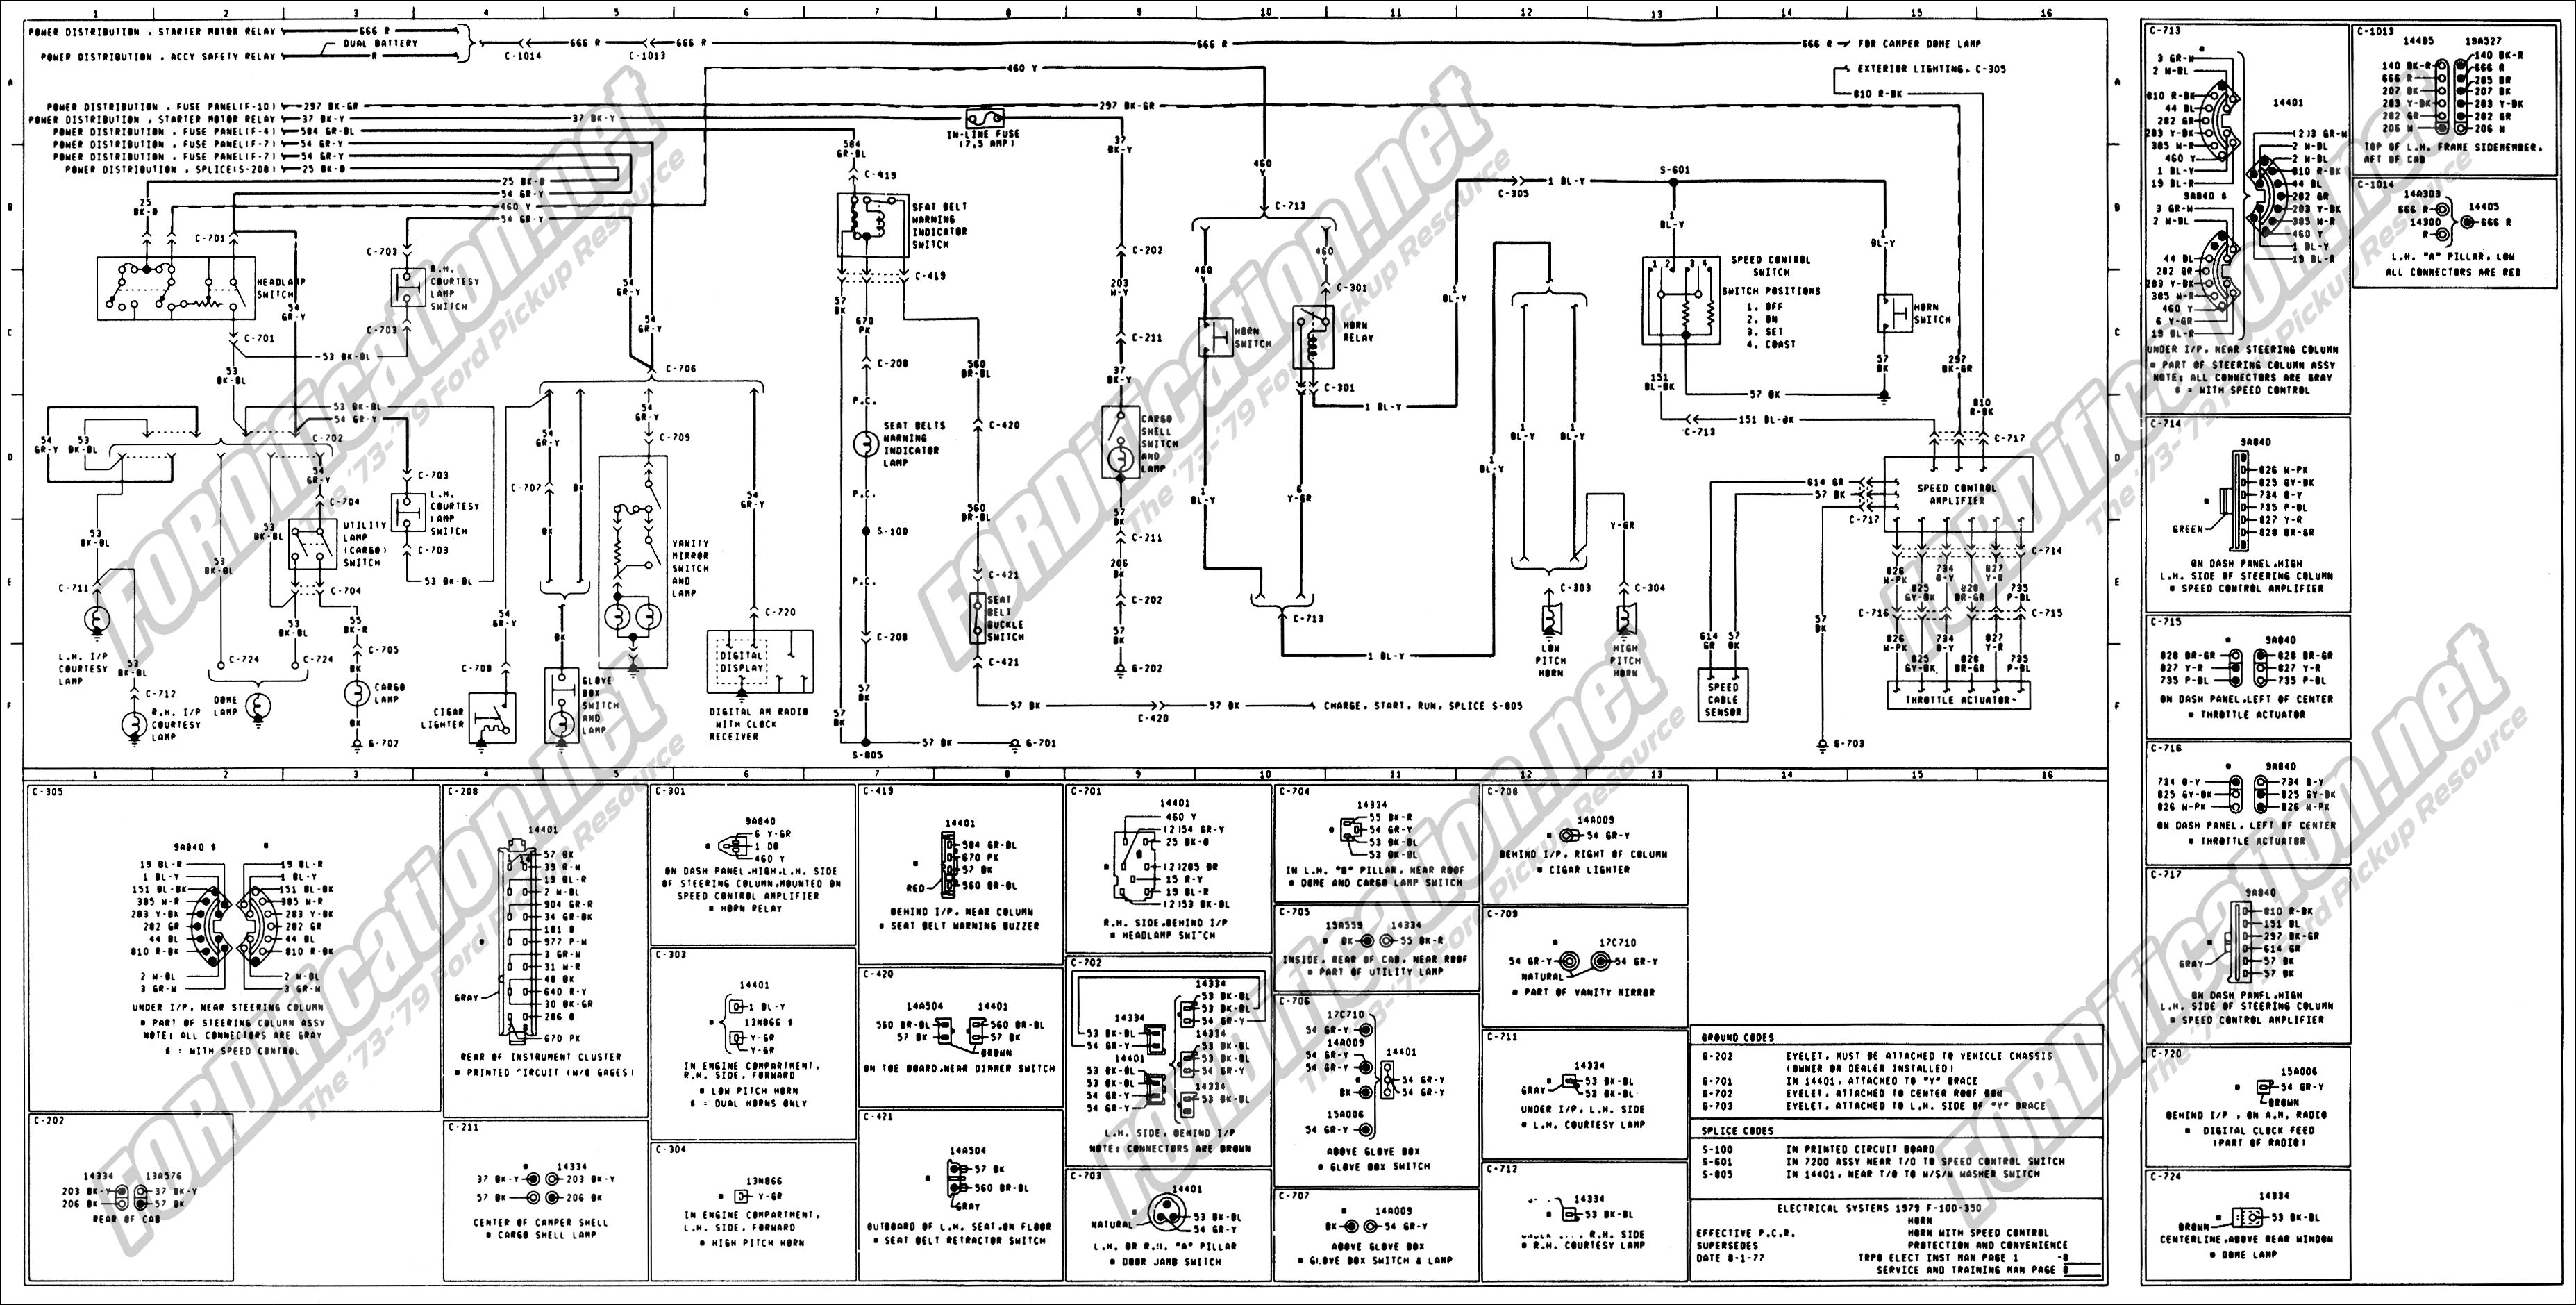 wiring_79master_8of9 1973 1979 ford truck wiring diagrams & schematics fordification net 1976 ford f100 wiring diagram at panicattacktreatment.co